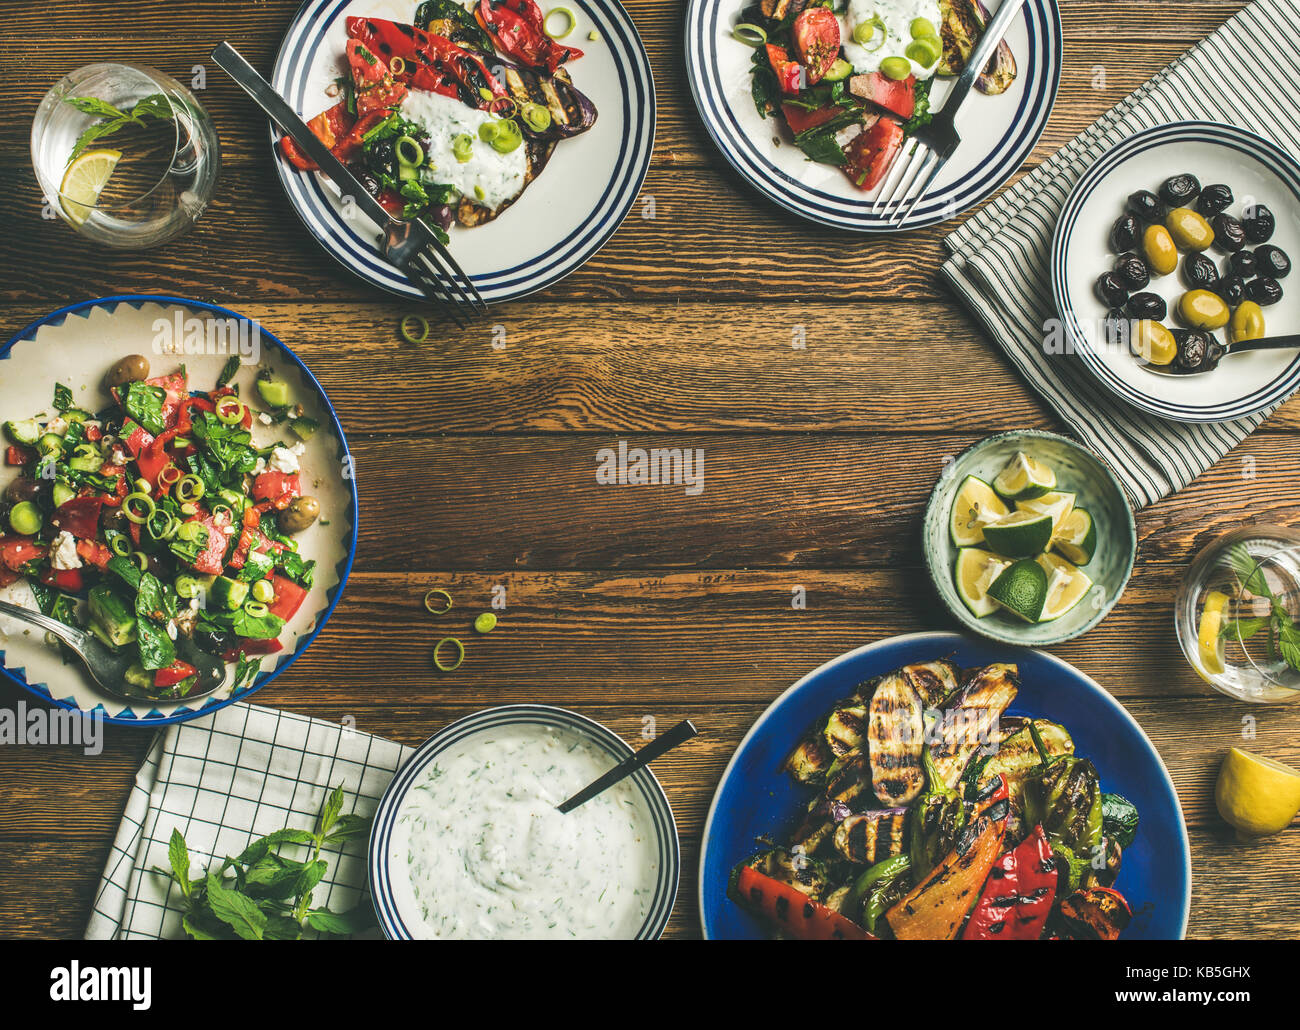 Flat-lay of healthy dinner table setting with vegetarian appetizers - Stock Image